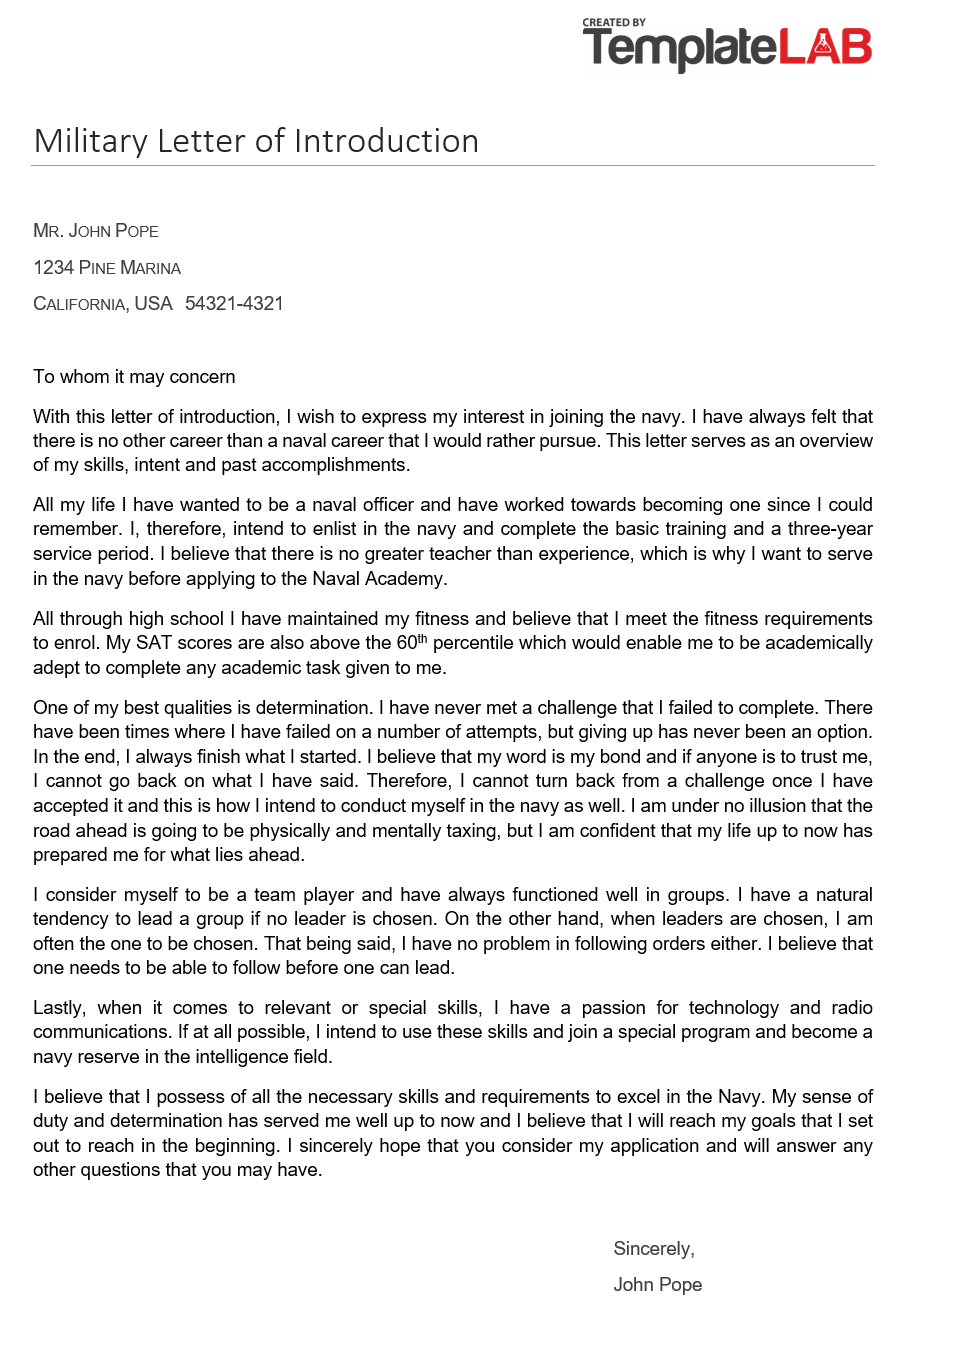 Free Military Letter of Introduction 1